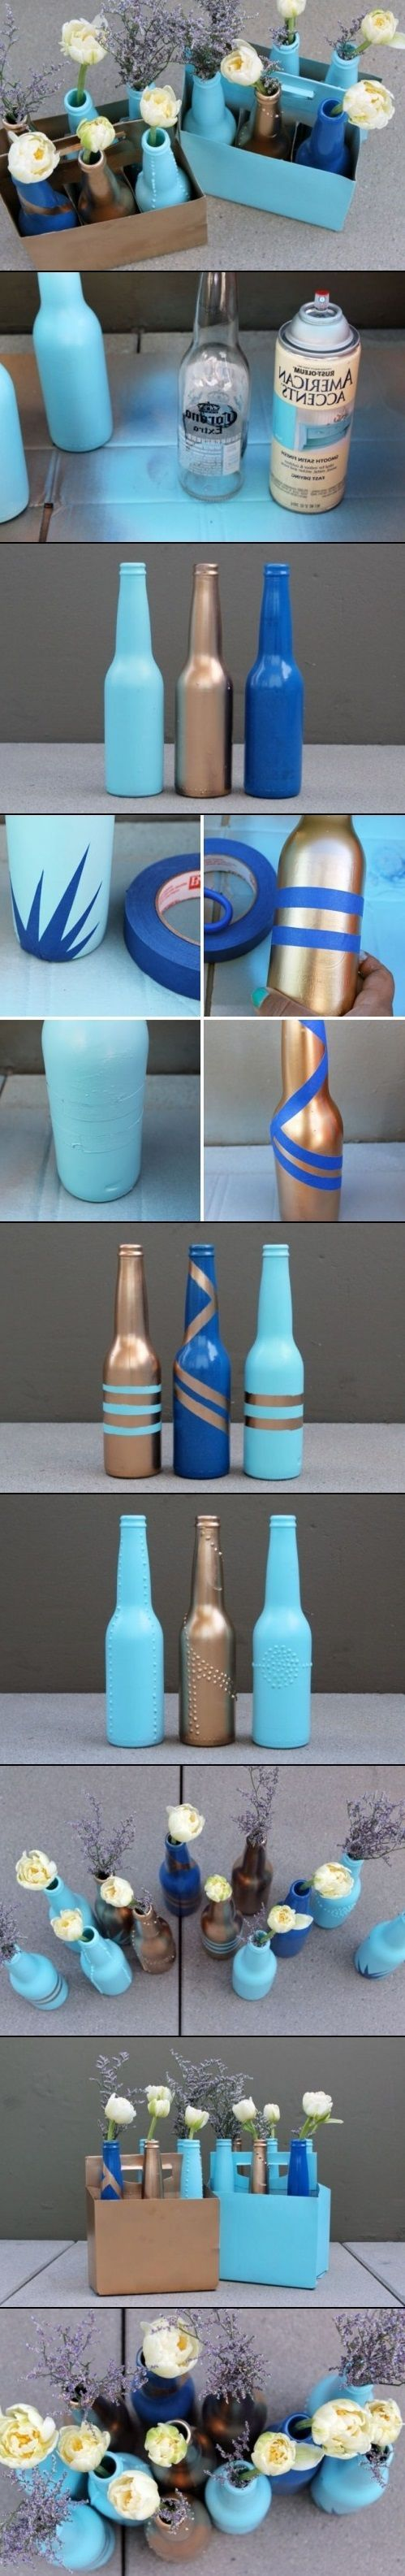 136 best images about craft ideas with glass on pinterest for Diy crafts with glass jars and bottles